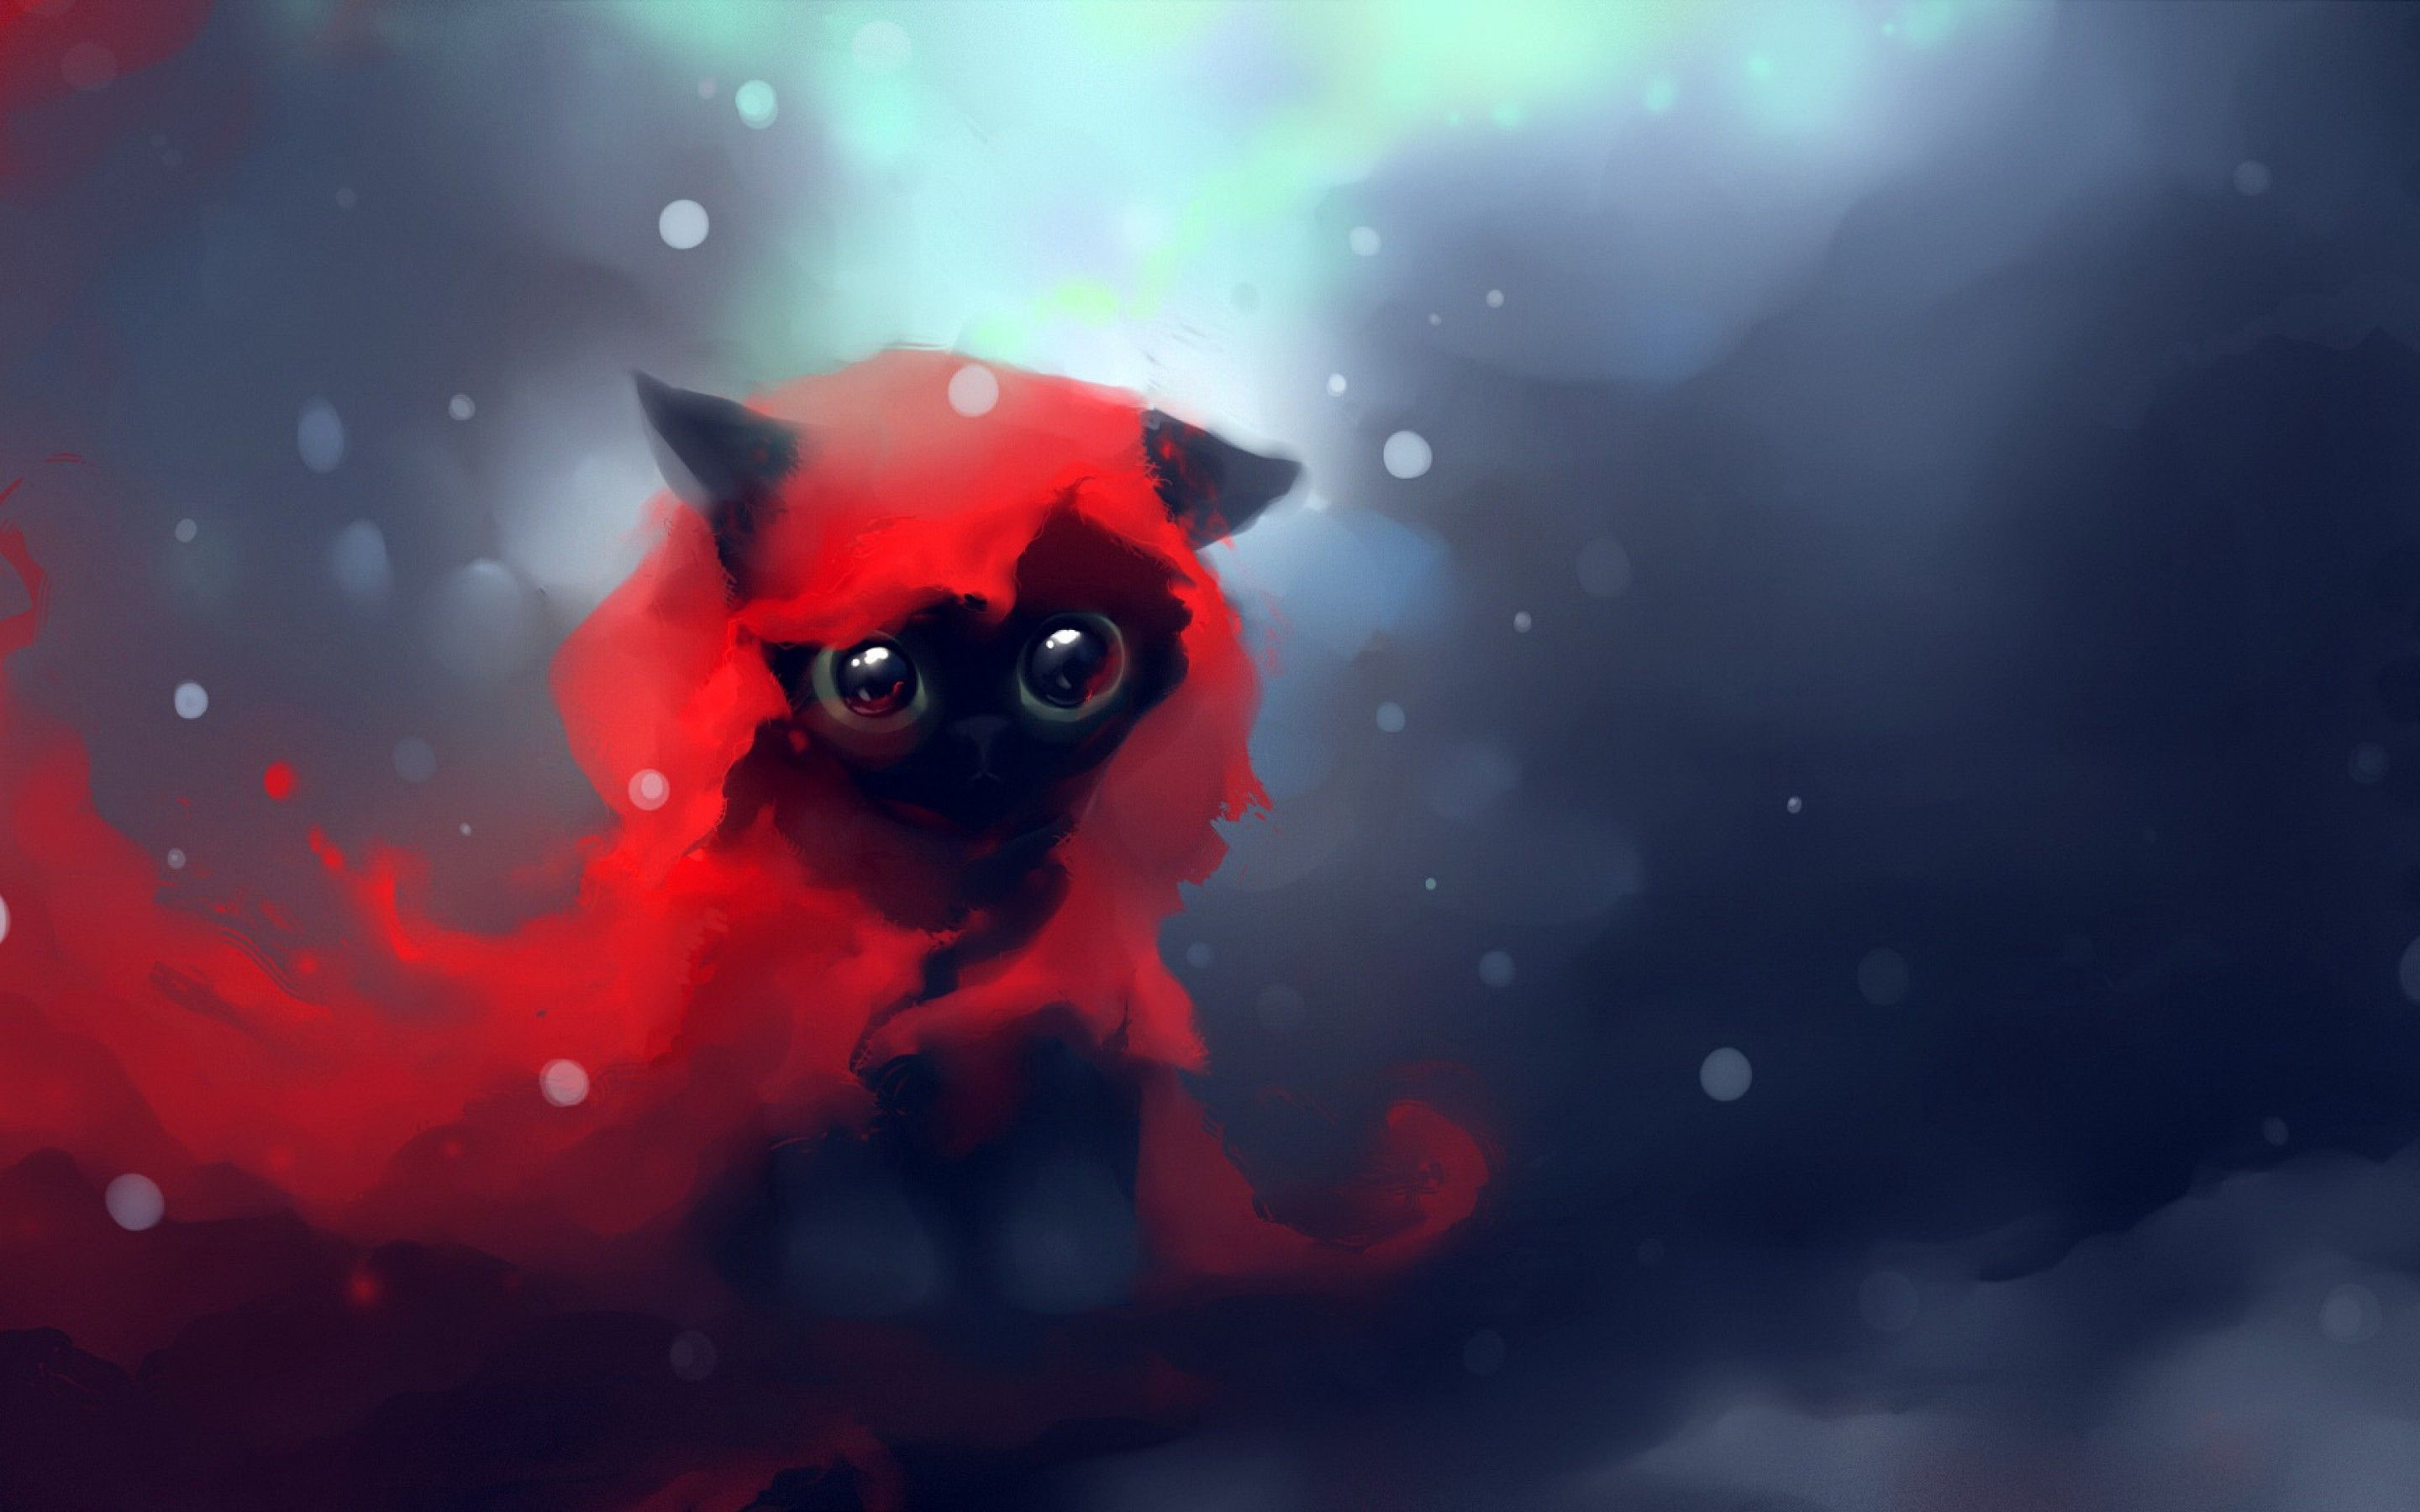 2880x1800 Anime Wallpapers 5 Hd Anime Wallpapers Cute Anime Wallpaper Cute Anime Cat